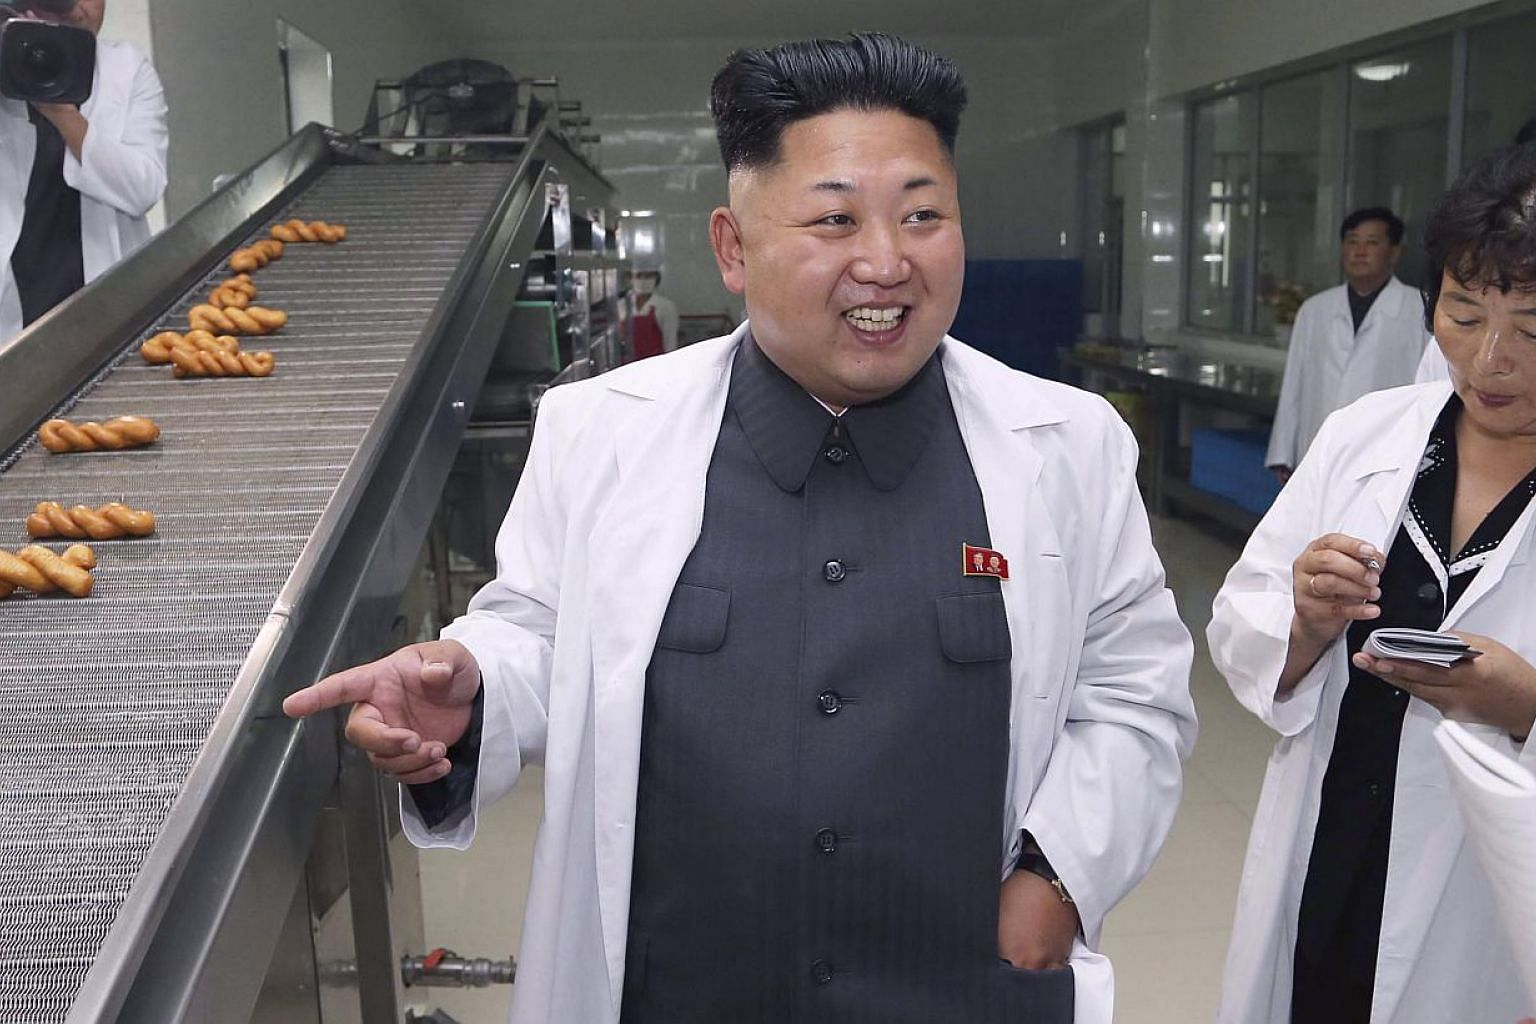 North Korean leader Kim Jong Un smiles as he gives field guidance during a visit to the November 2 Factory of the Korean People's Army (KPA). -- PHOTO: REUTERS